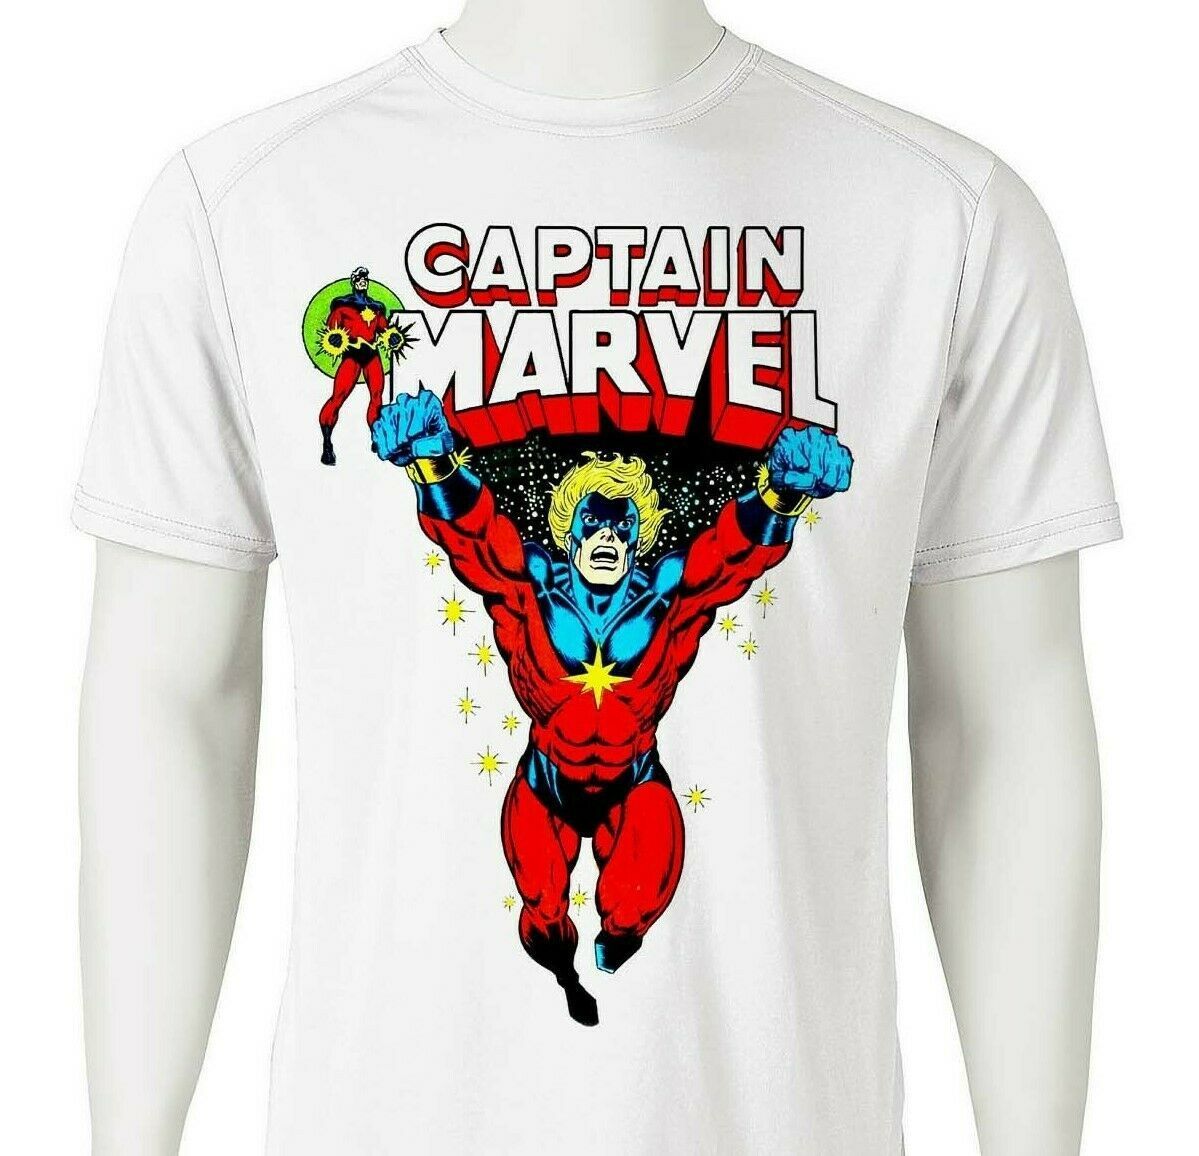 Captain Marvel Dri Fit graphic Tshirt superhero comic SPF sun shirt active tee